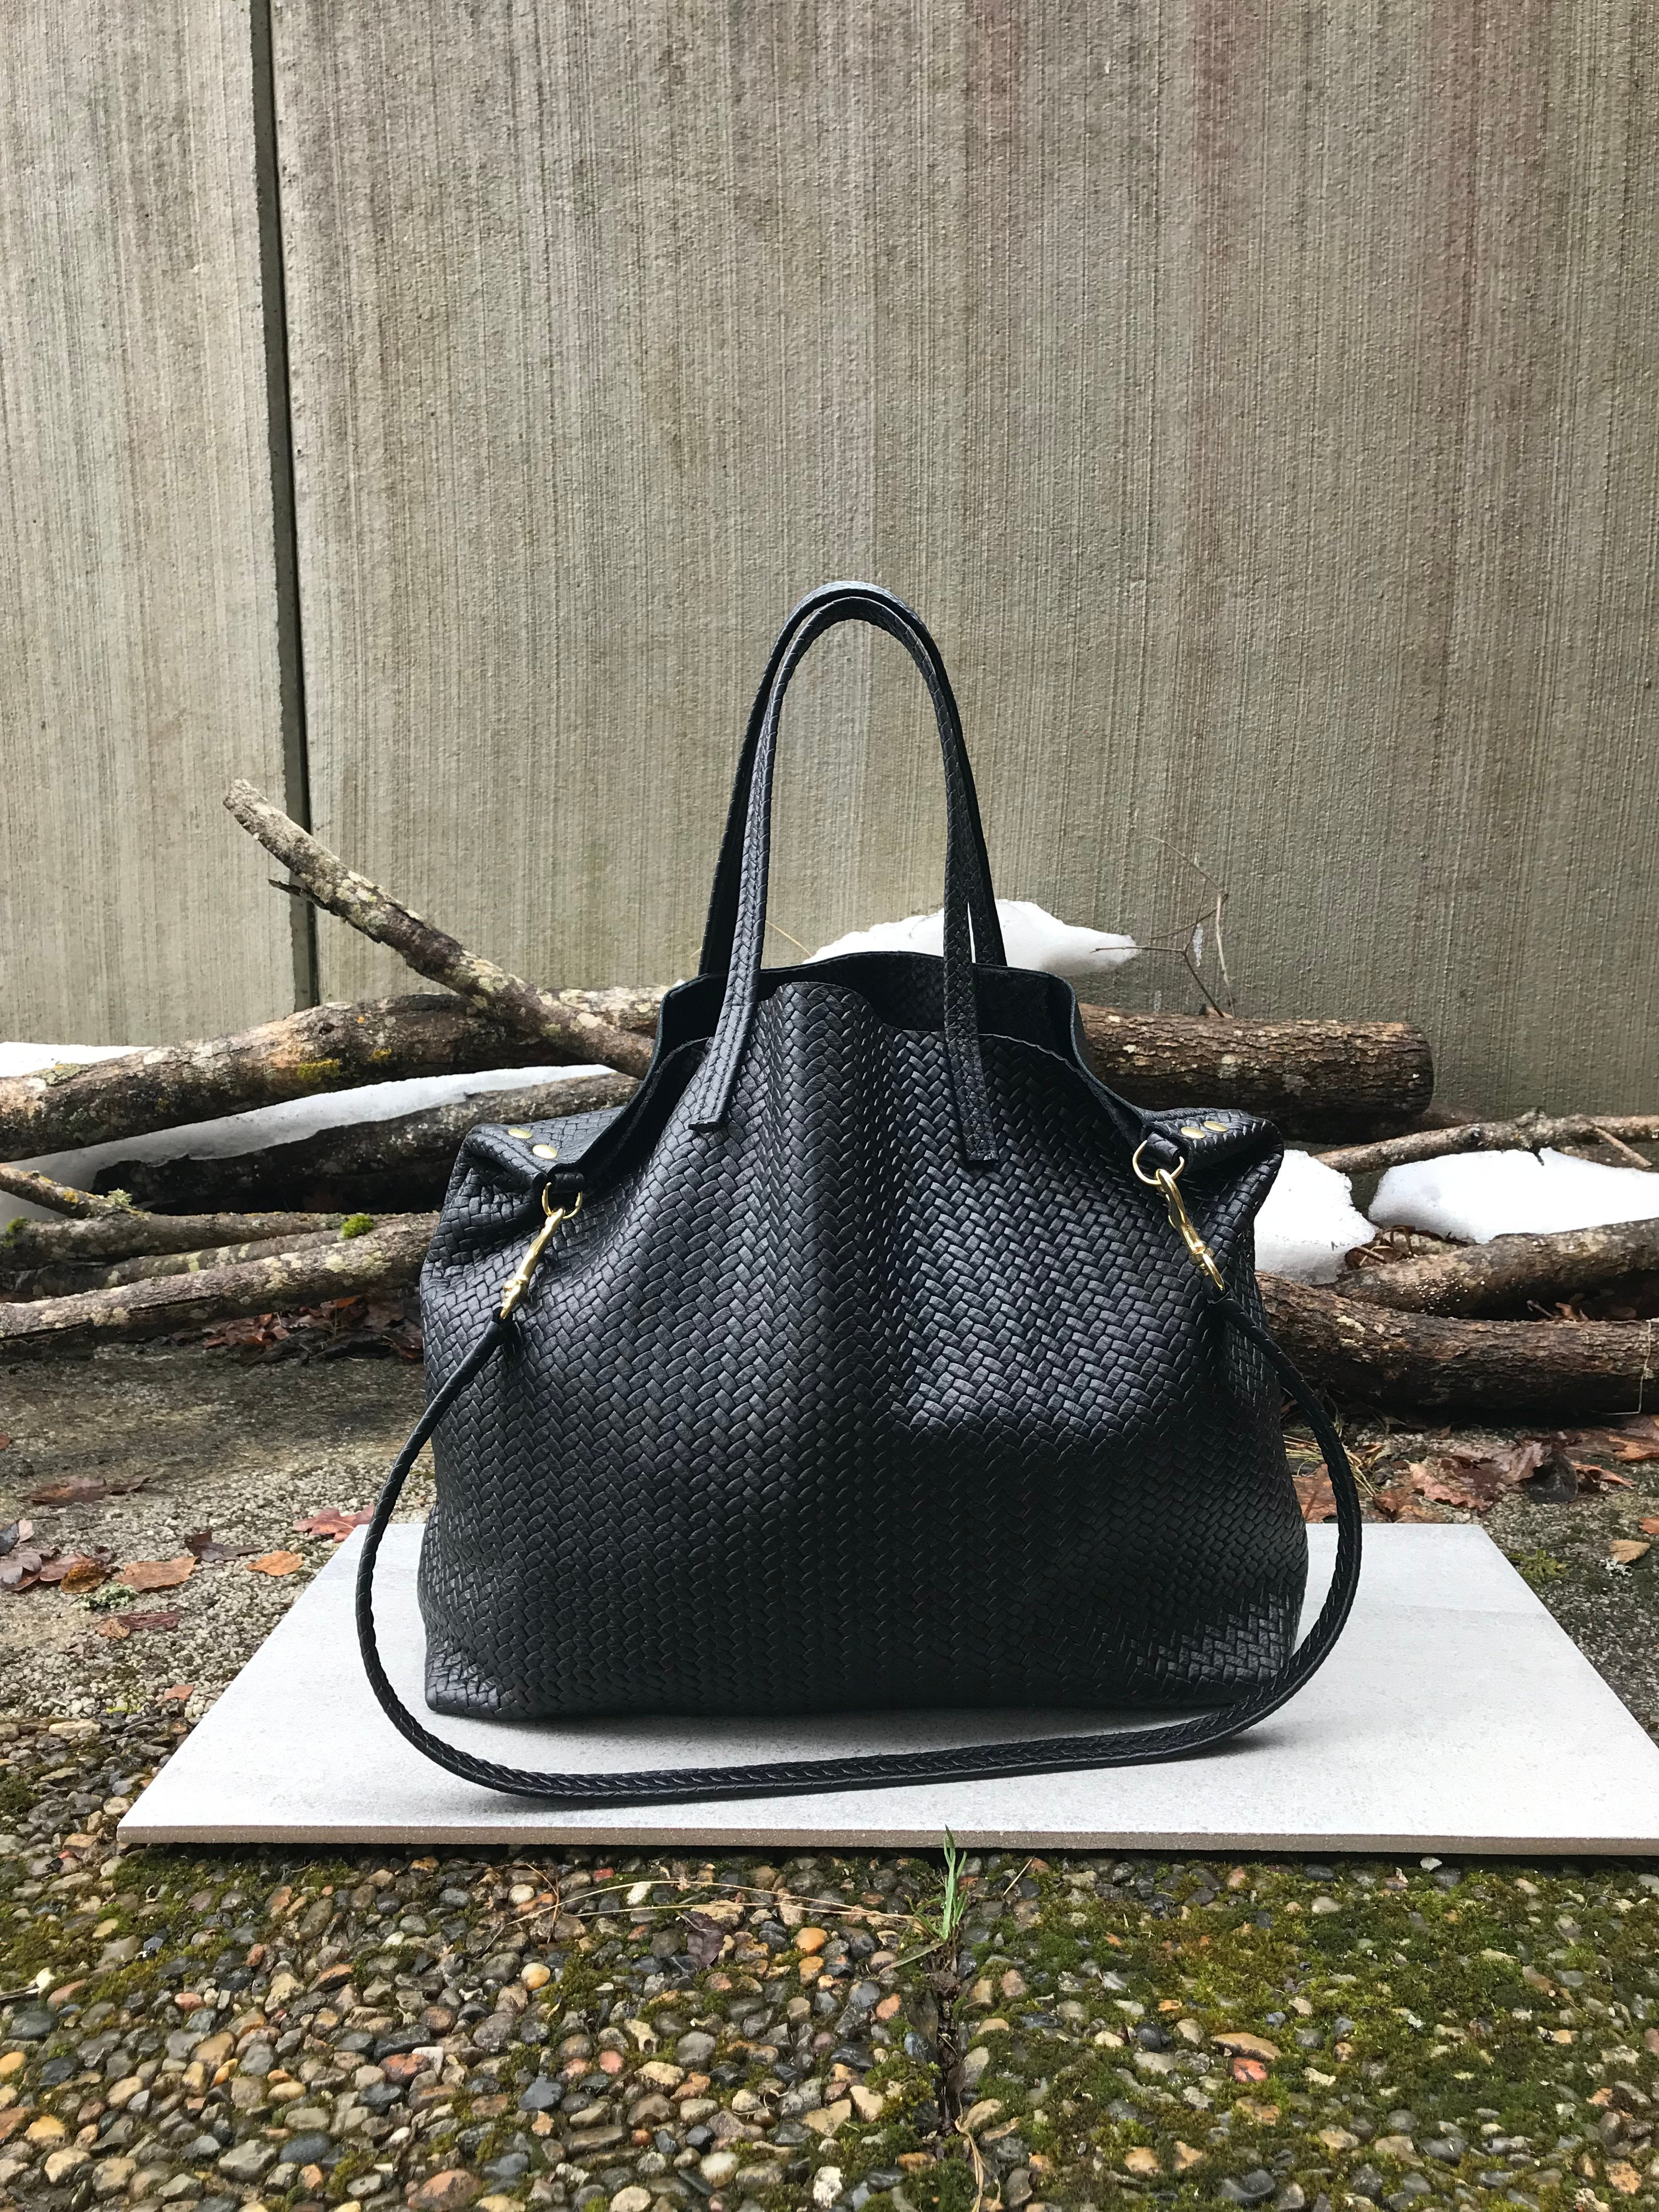 New Tote Bag - Herringbone Leather